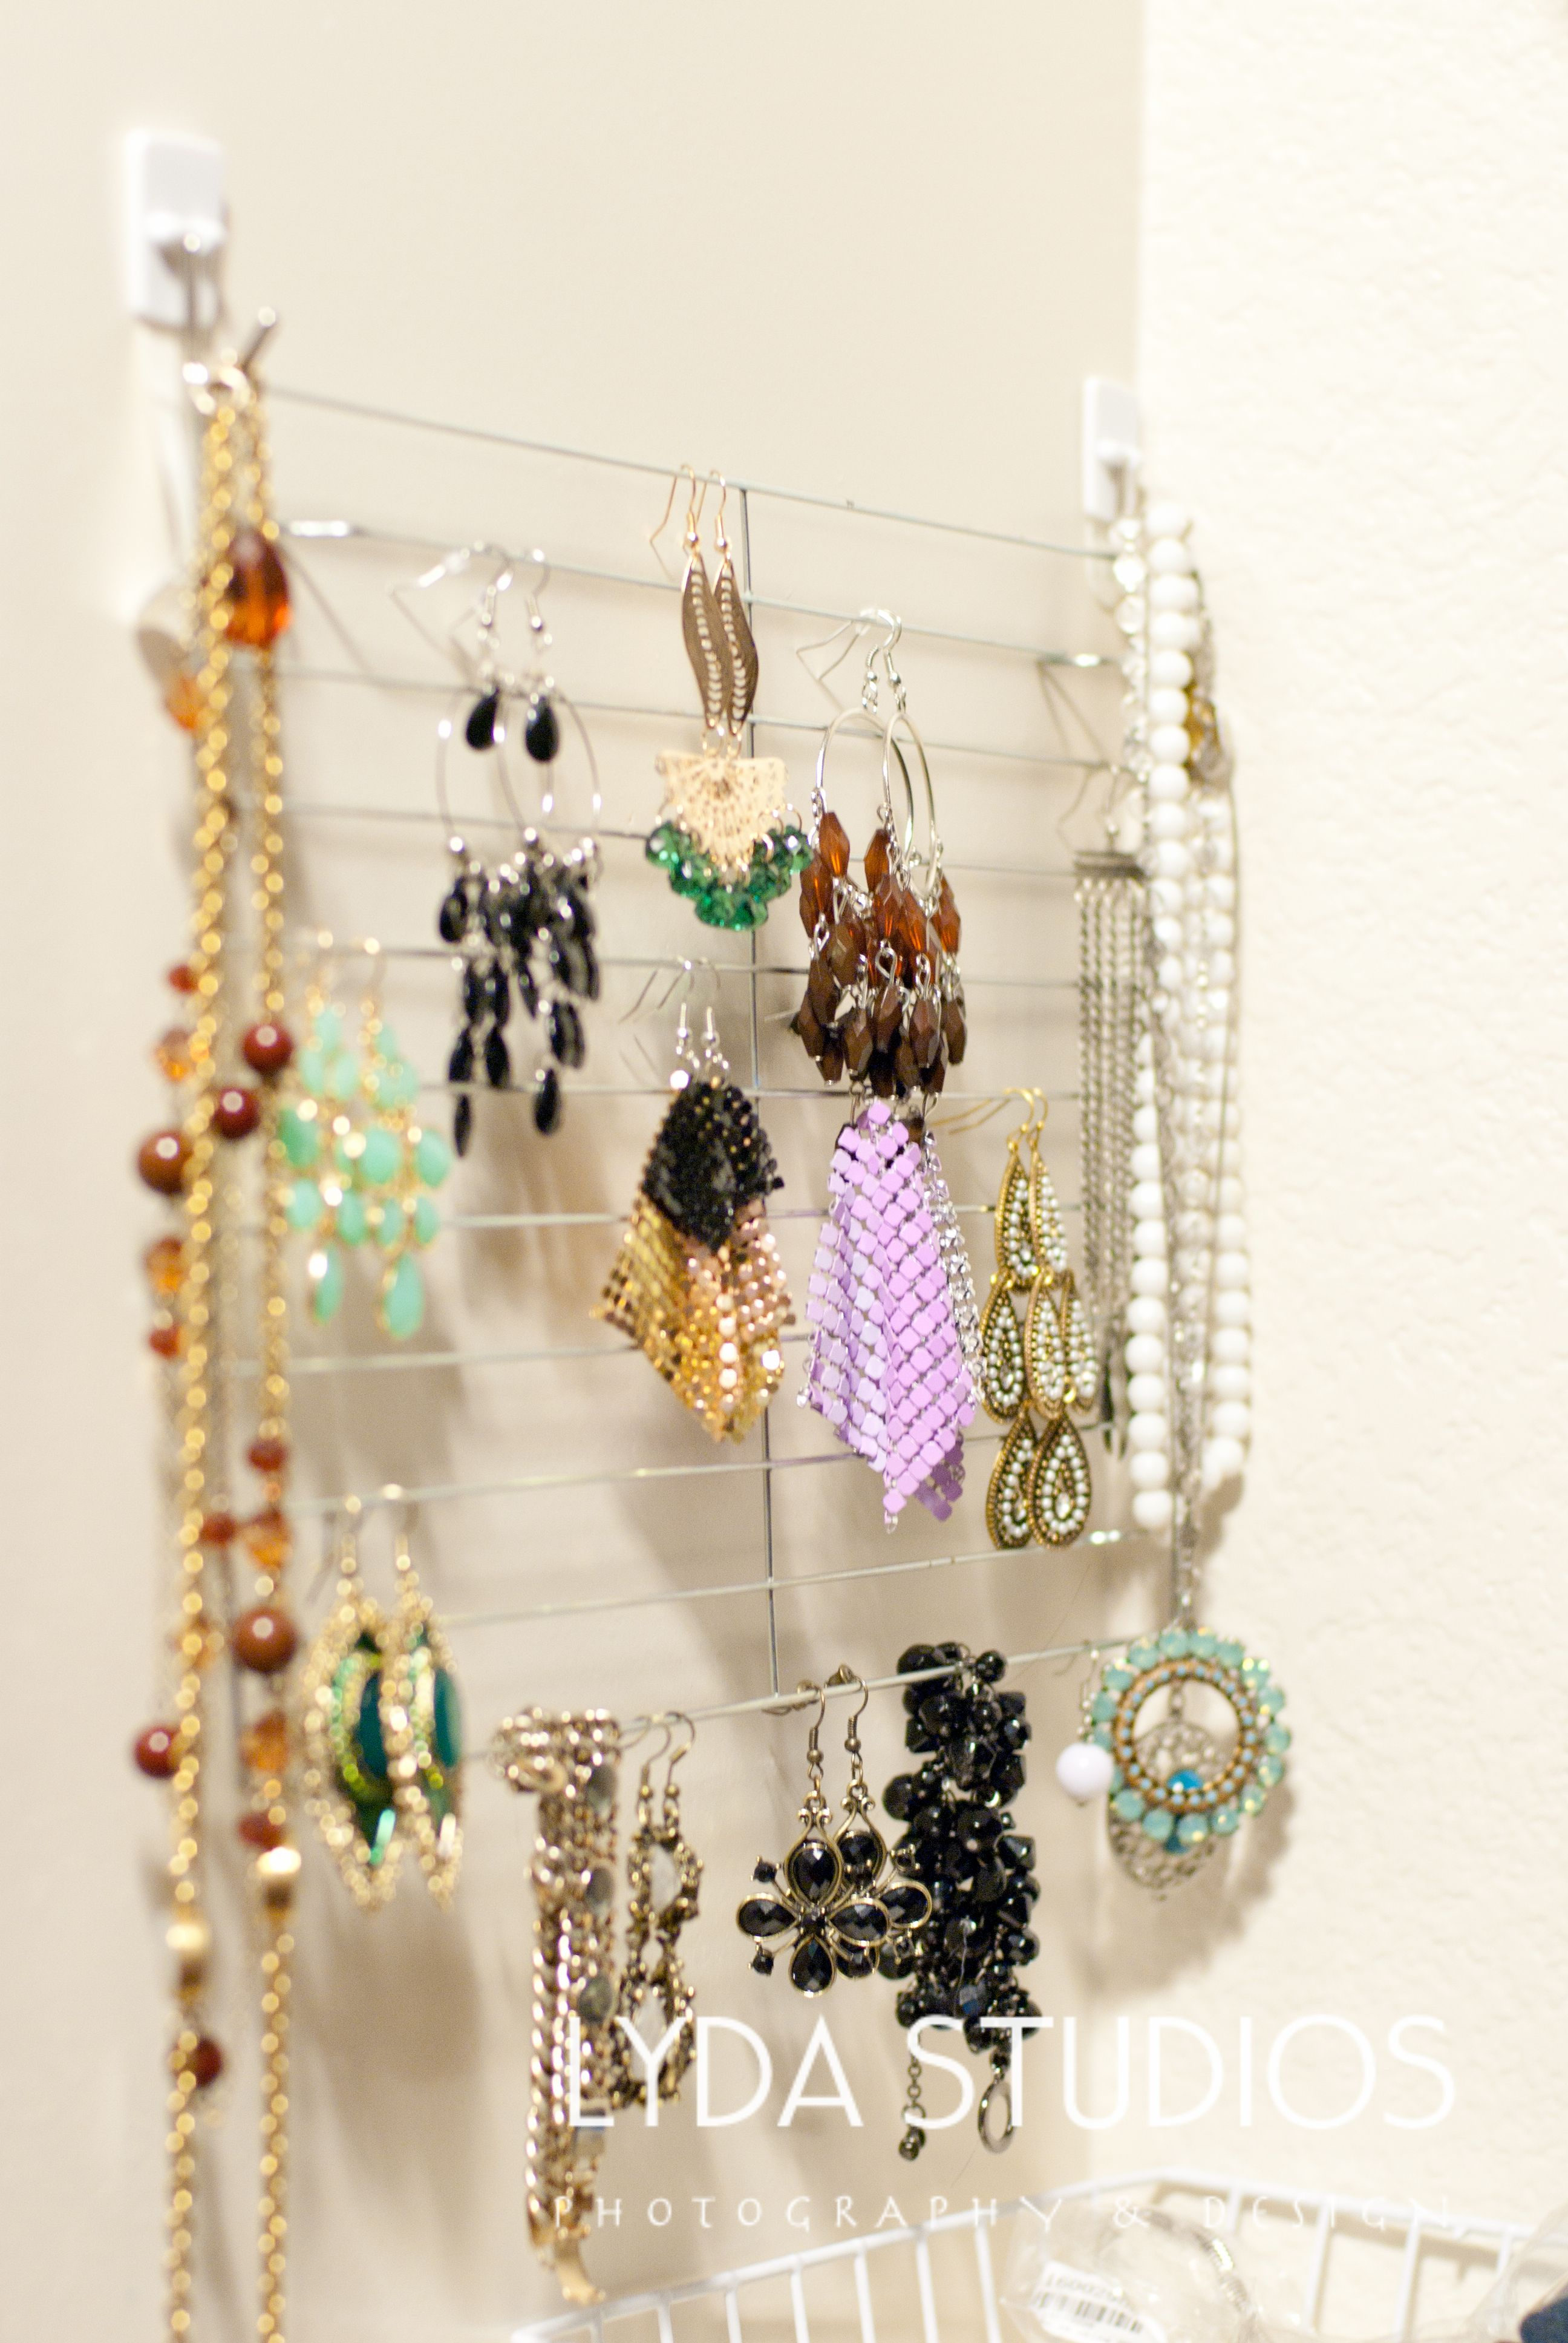 Diy Jewelry And Earring Holder Dollar Baking Wire Rack 1 50 Adhesive Hook From Target Great For Closet Walls